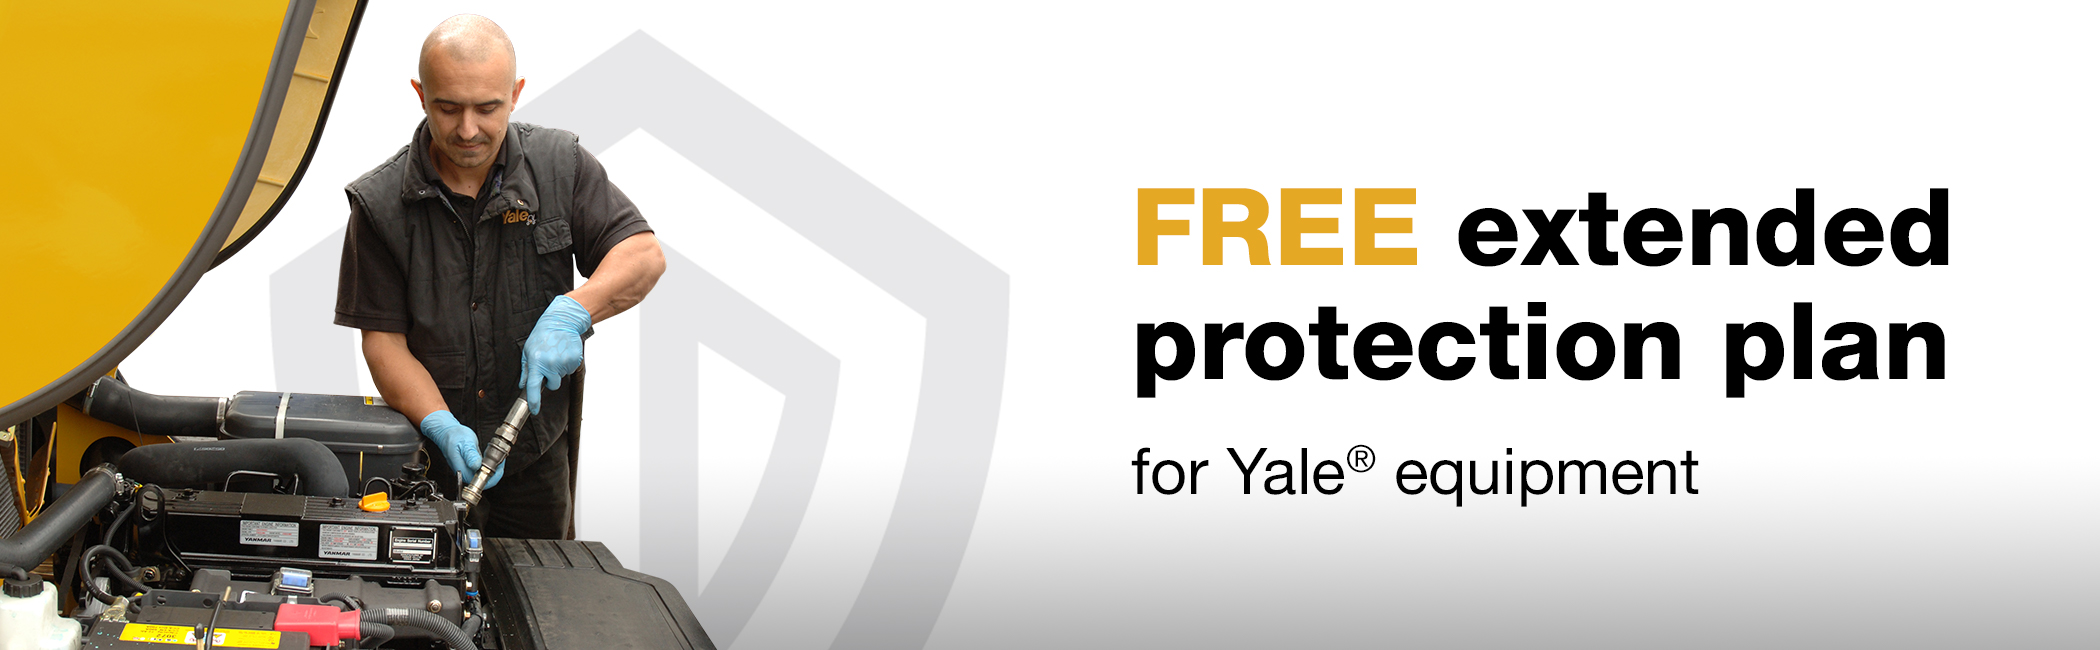 Free Extended Protection Plan for Yale Equipment